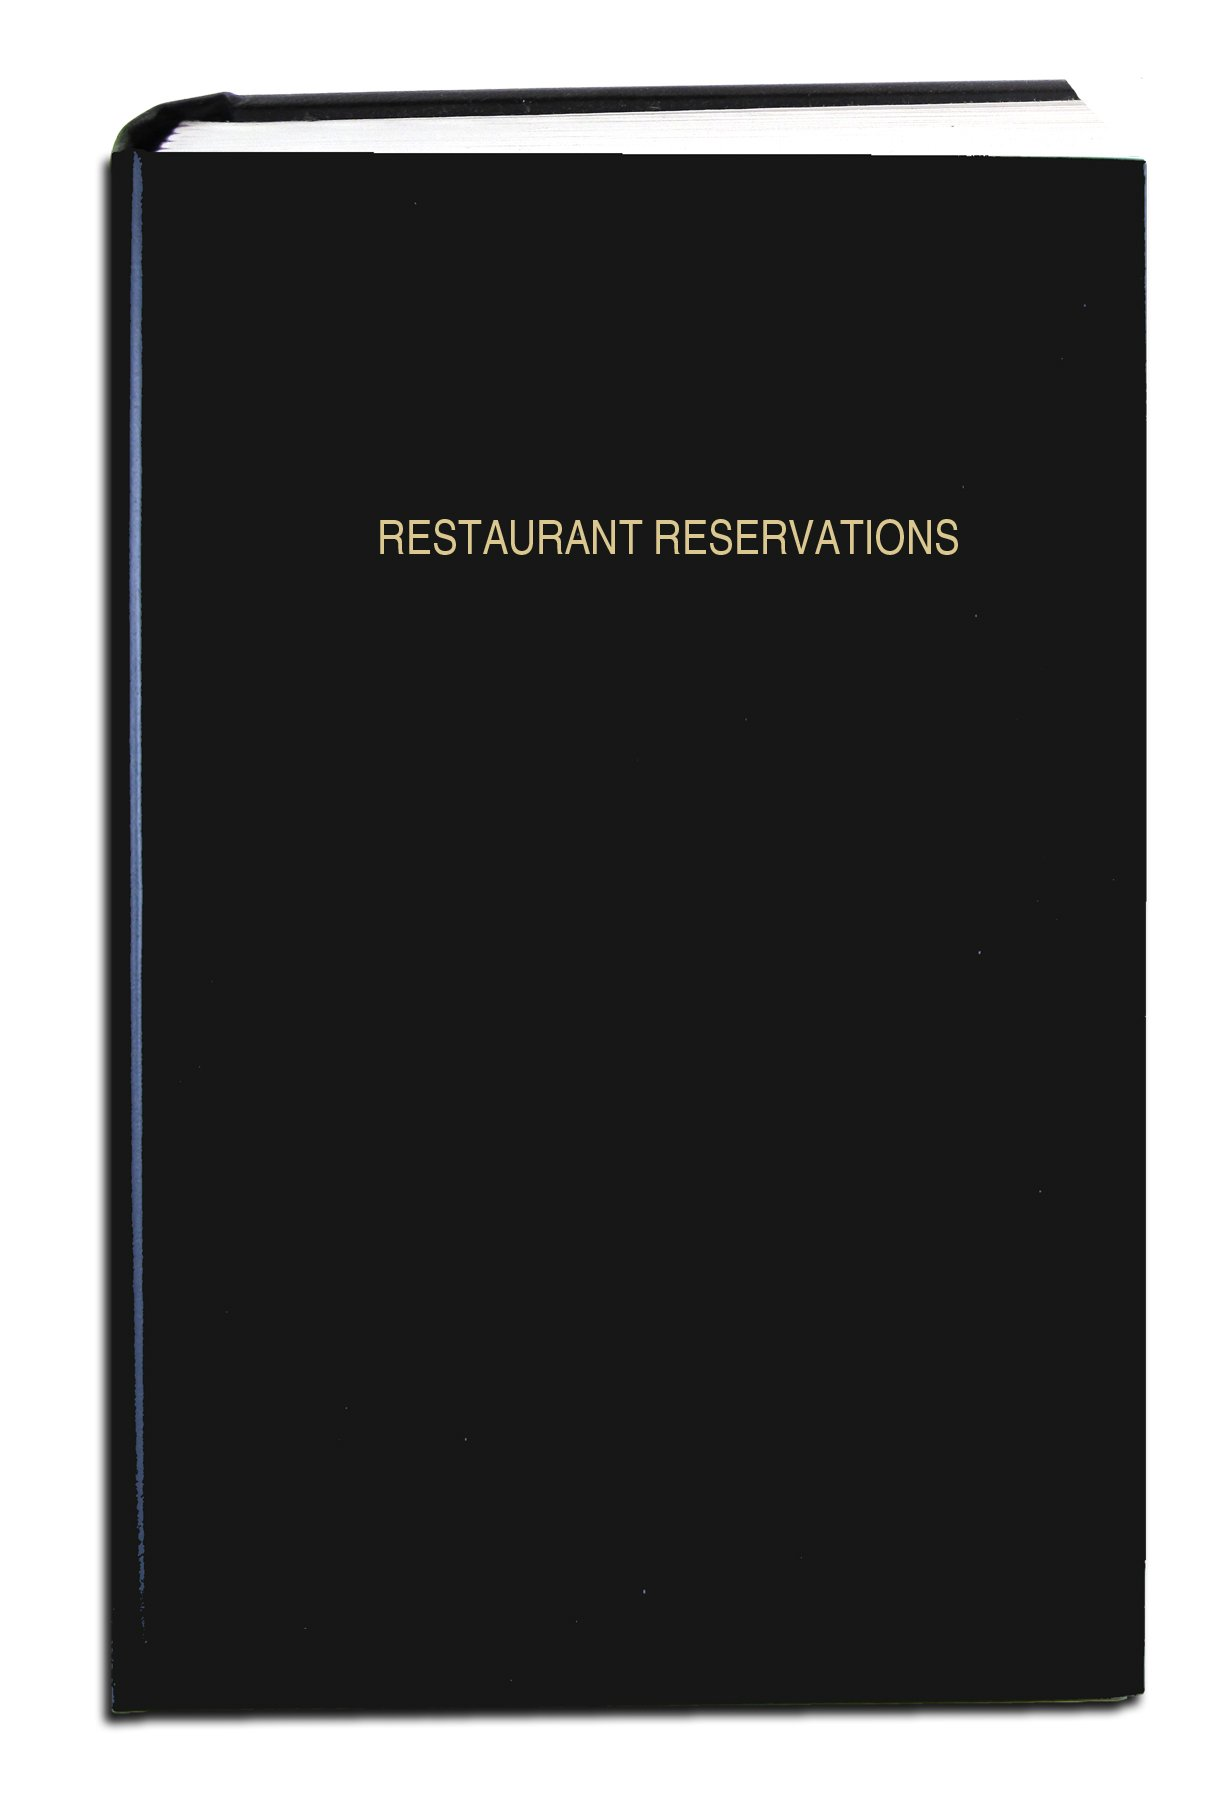 "BookFactory Restaurant Reservations Book, 365 Day Table Reservations, Dinner Reservations, 408 Pages, 8 7/8'' x 13 1/2"" Black Imitation Leather, Smyth Sewn Hardbound (LOG-408-OCS-A-LKT62-(RESTAURANT))"